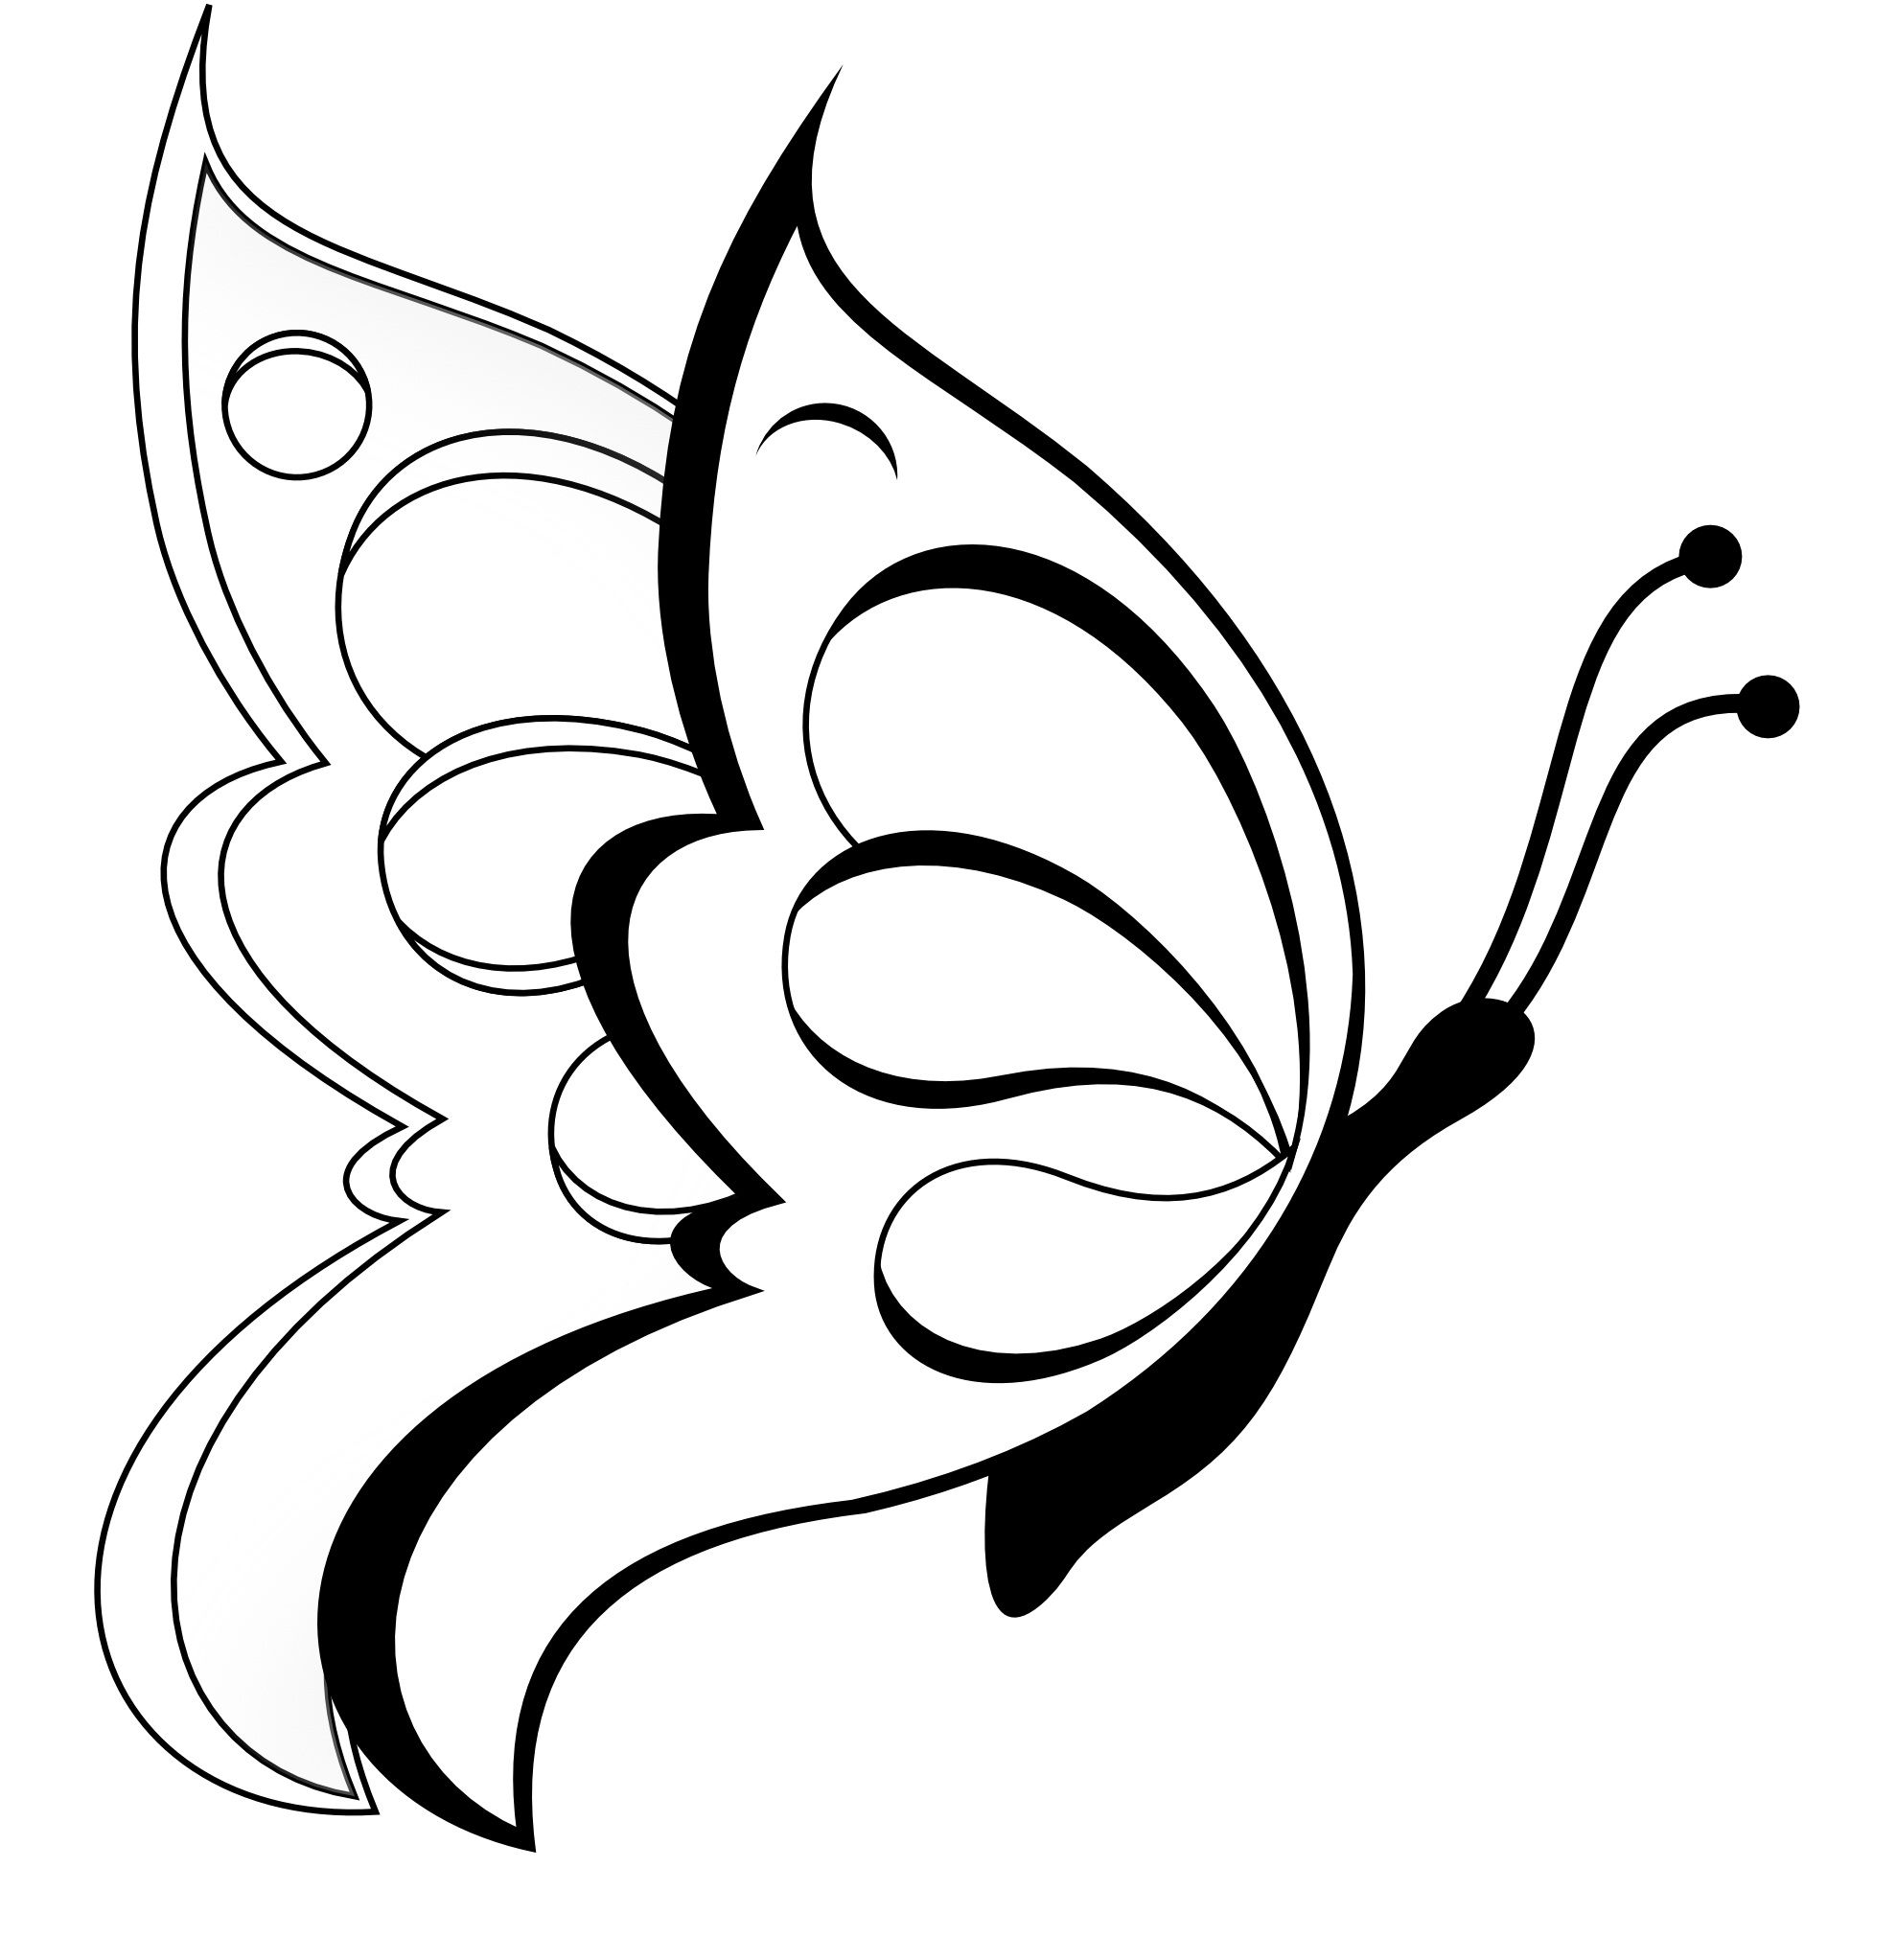 Images for simple butterfly drawings